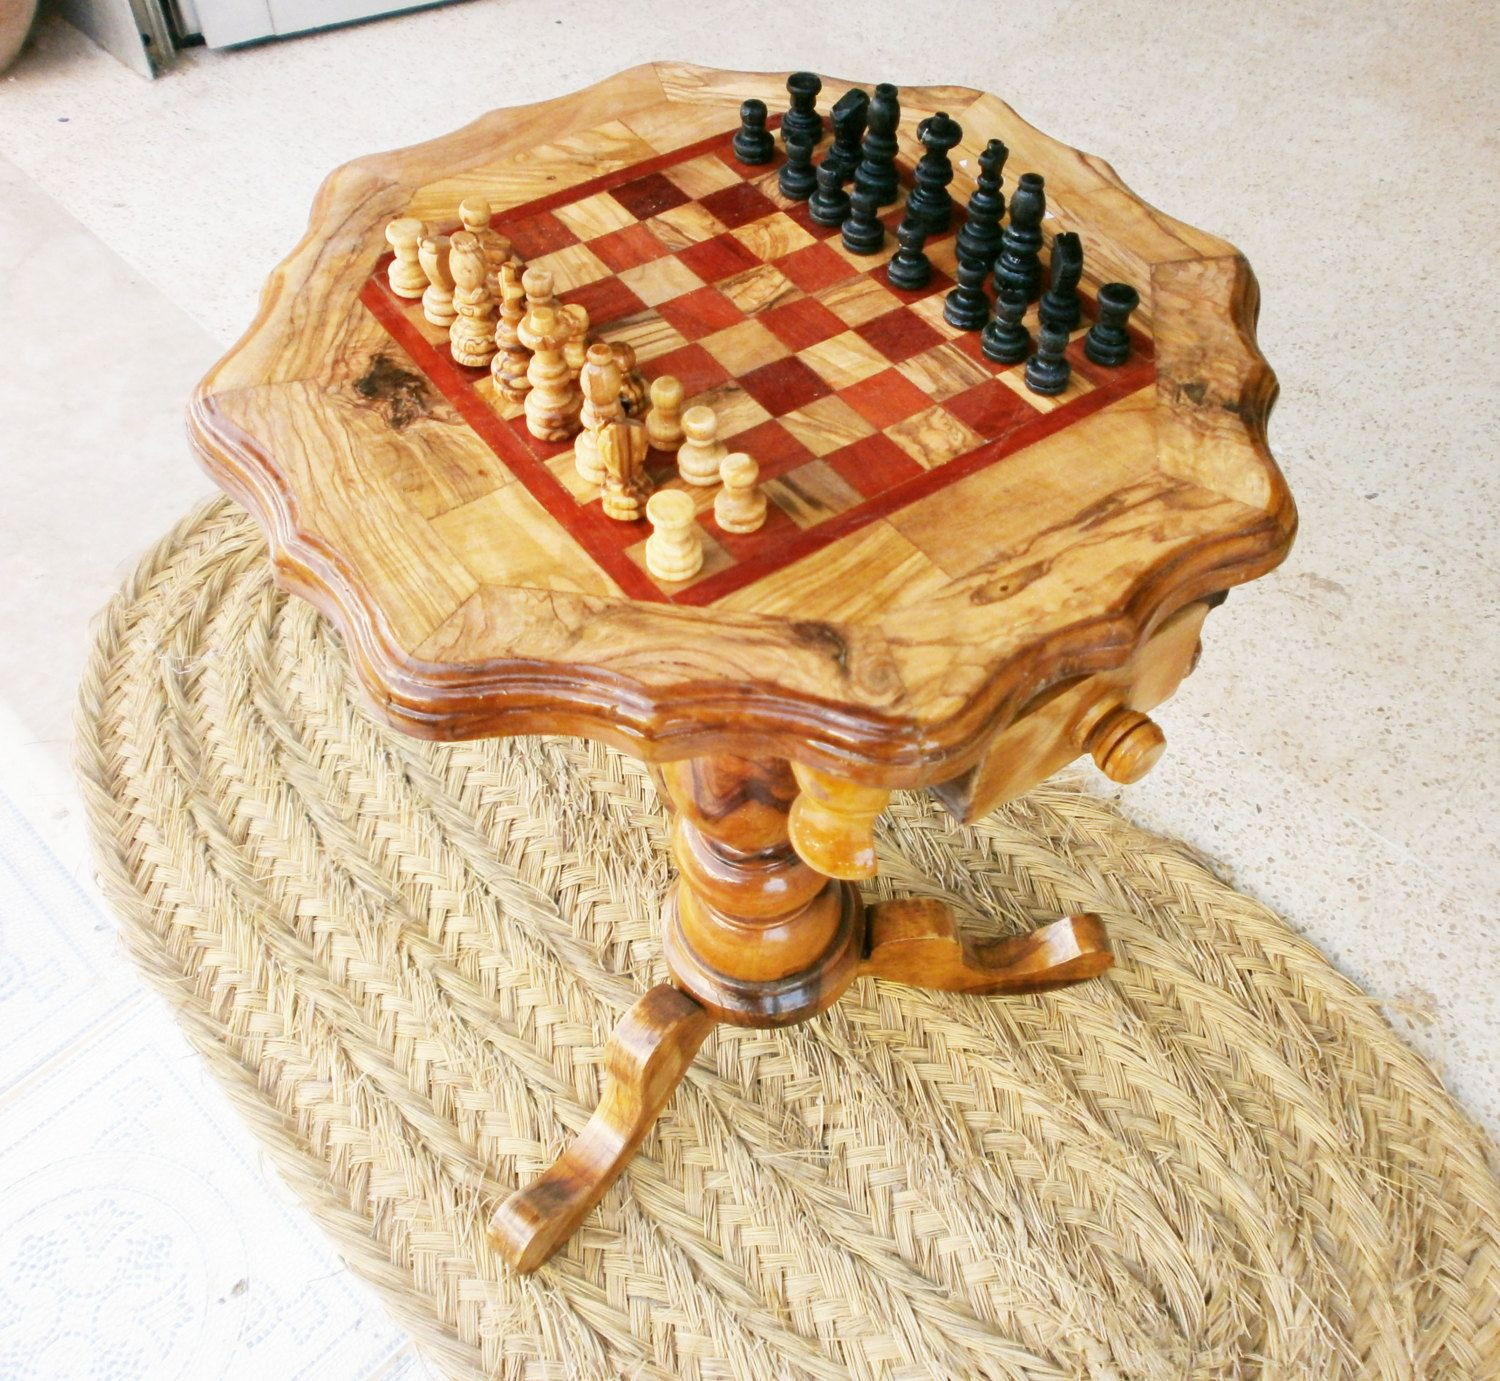 Olive wood chess table best chess sets pinterest chess woods and chess sets - Wooden chess tables ...